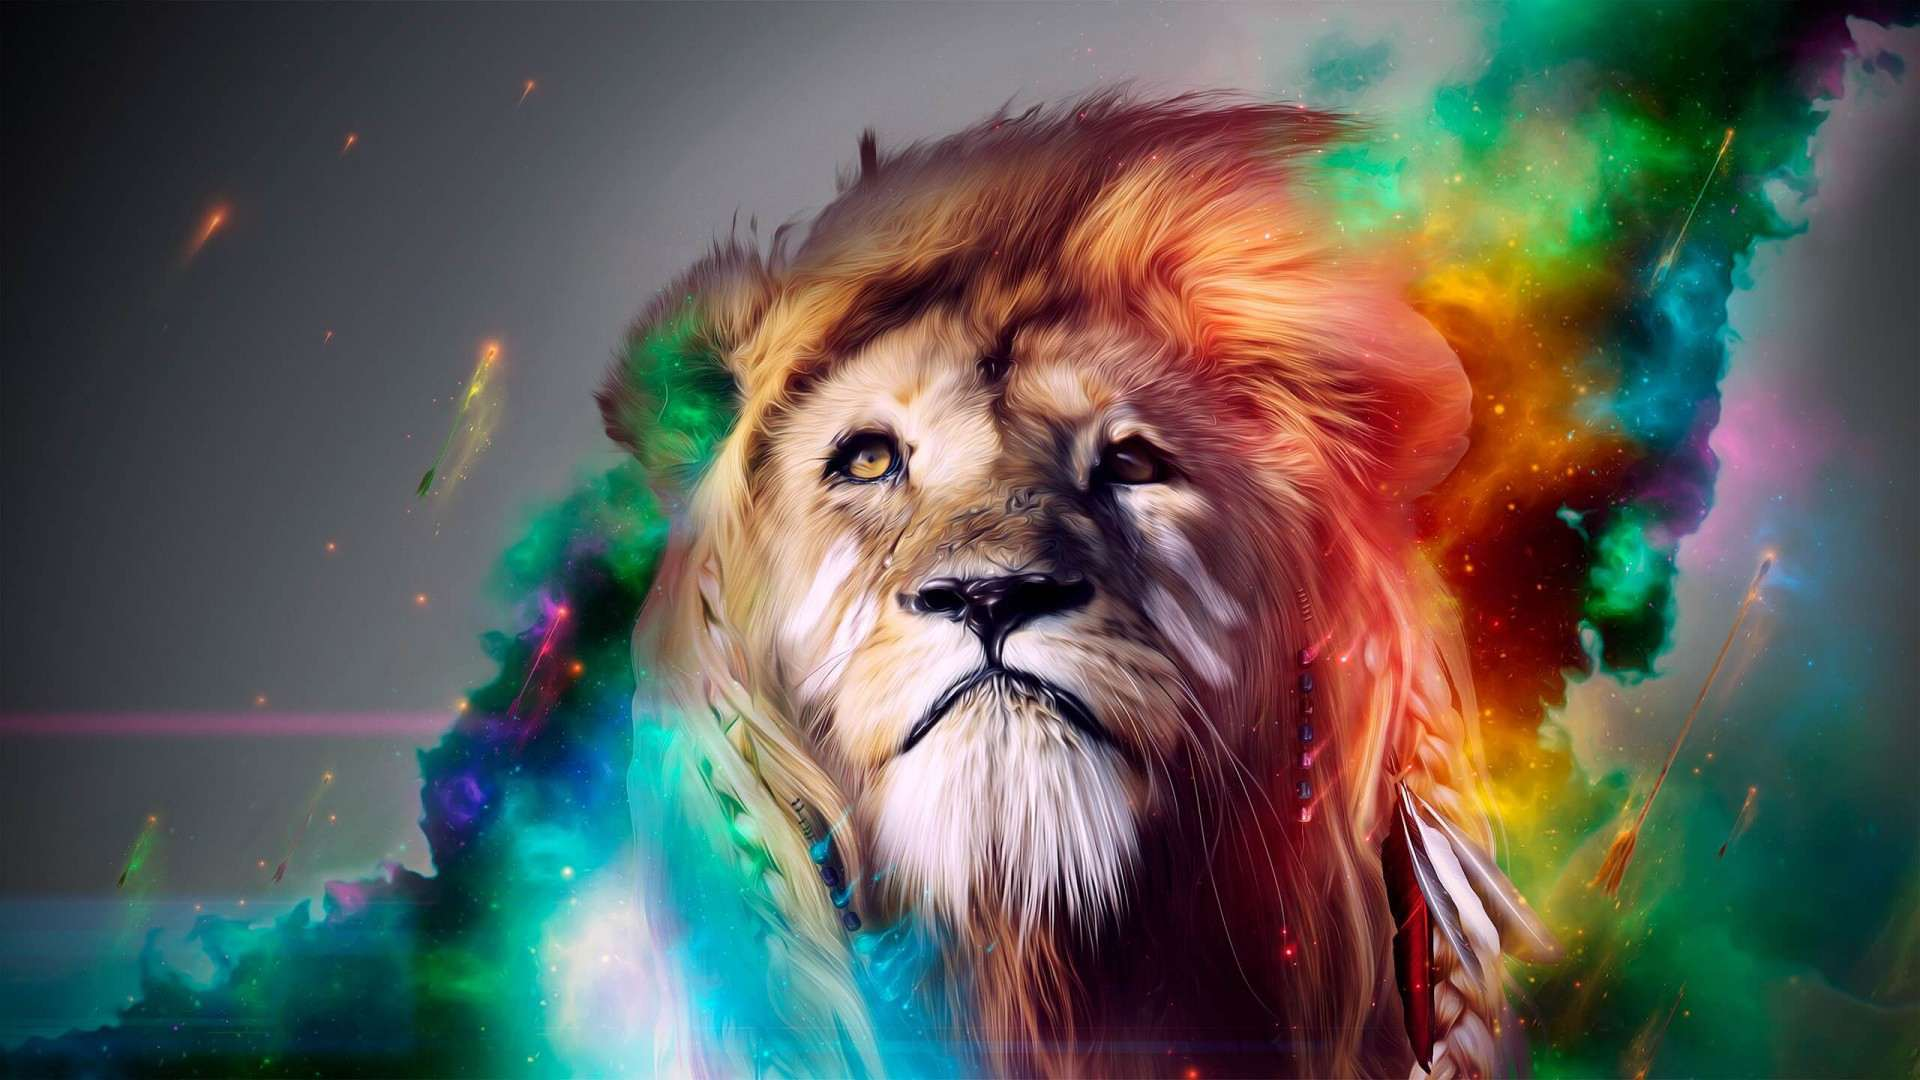 An Abstract Lion Wallpaper